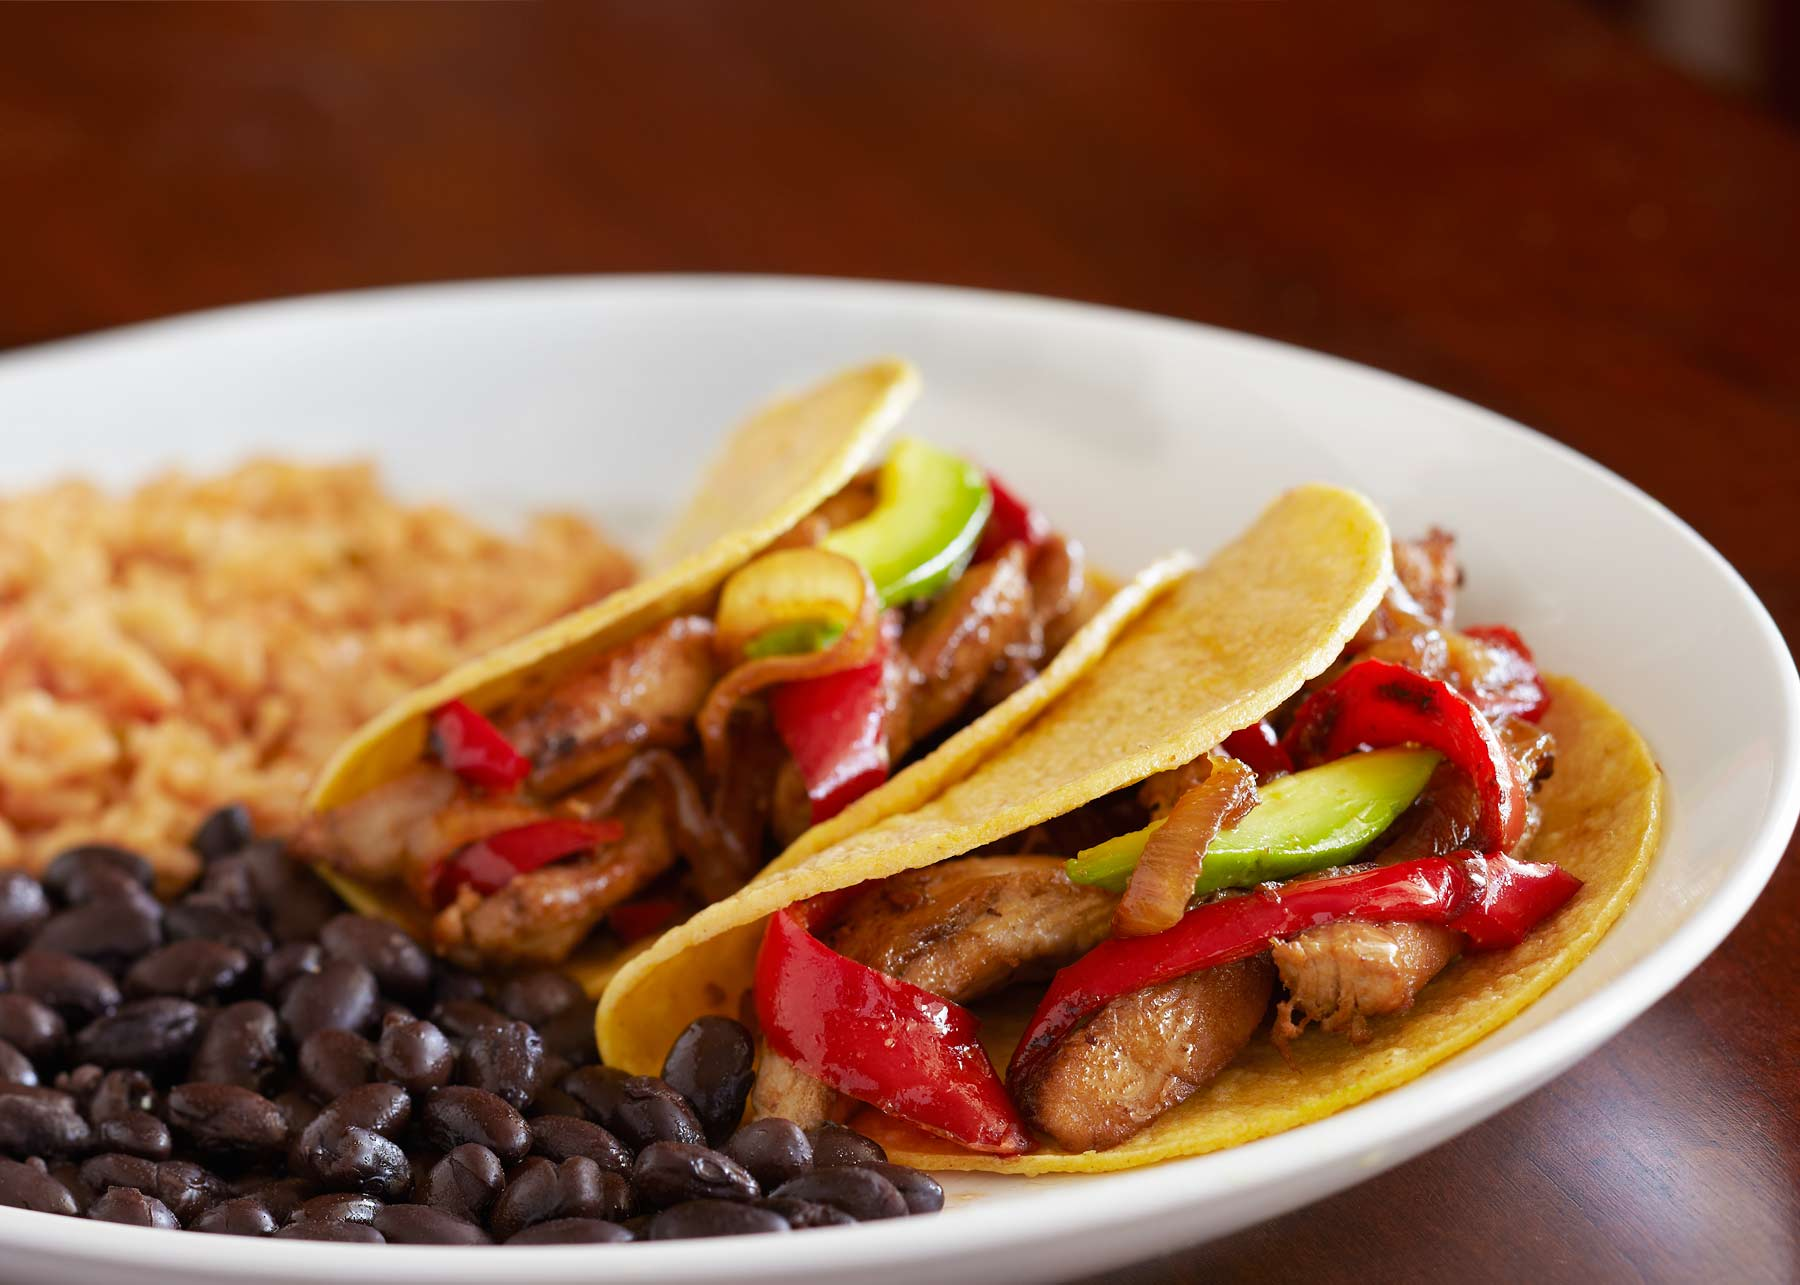 Quick Chicken Fajitas, Beans and Spanish Rice | American Heart Association Recipes